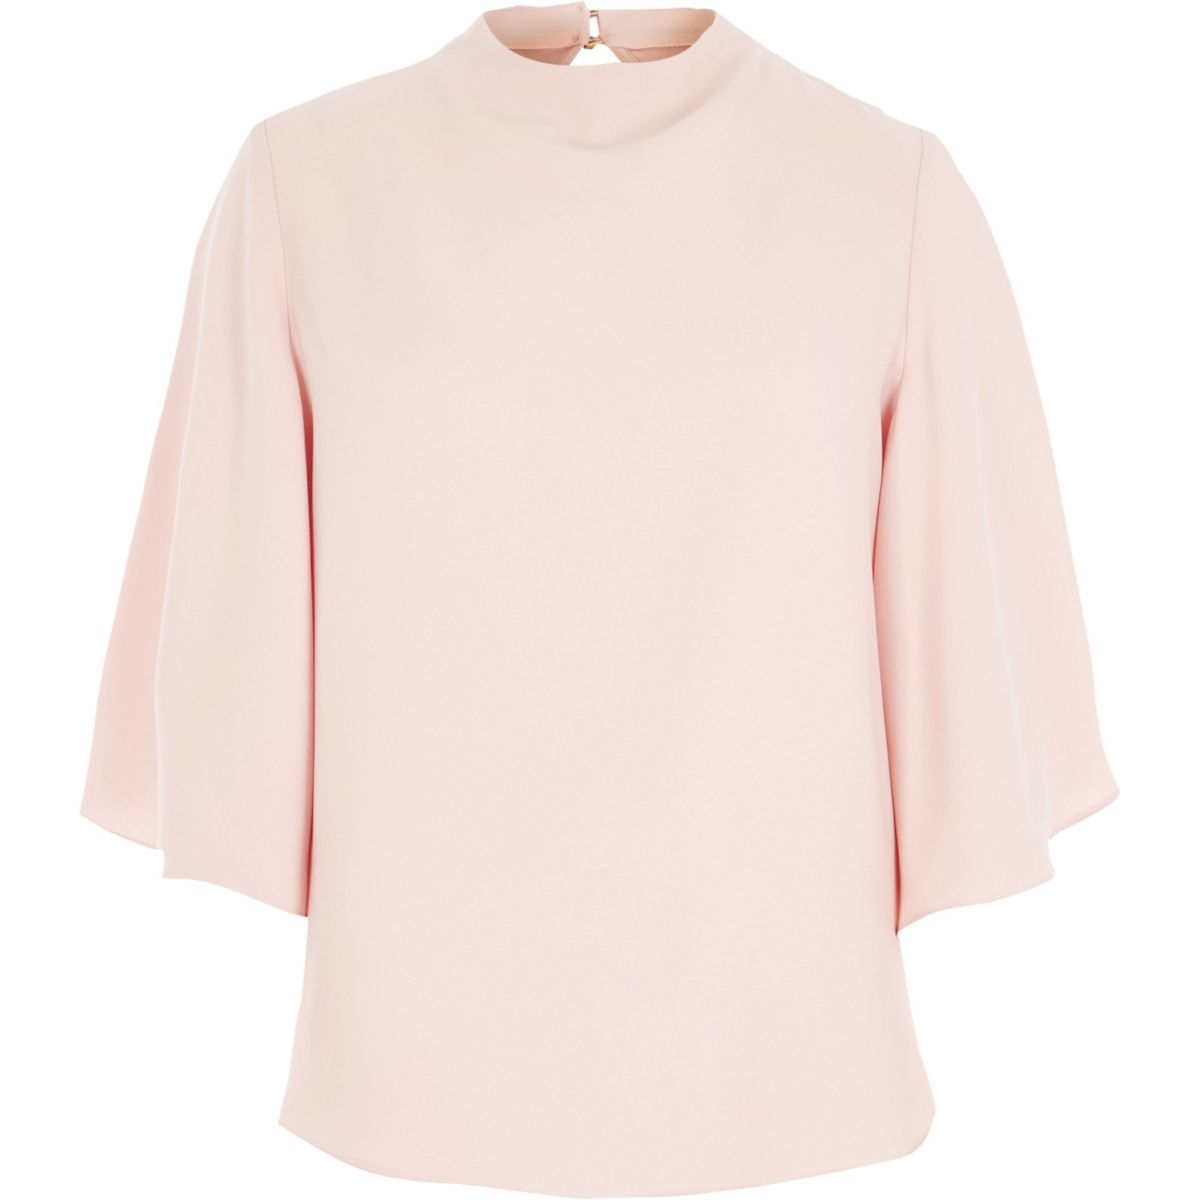 Light pink high neck cape sleeve top